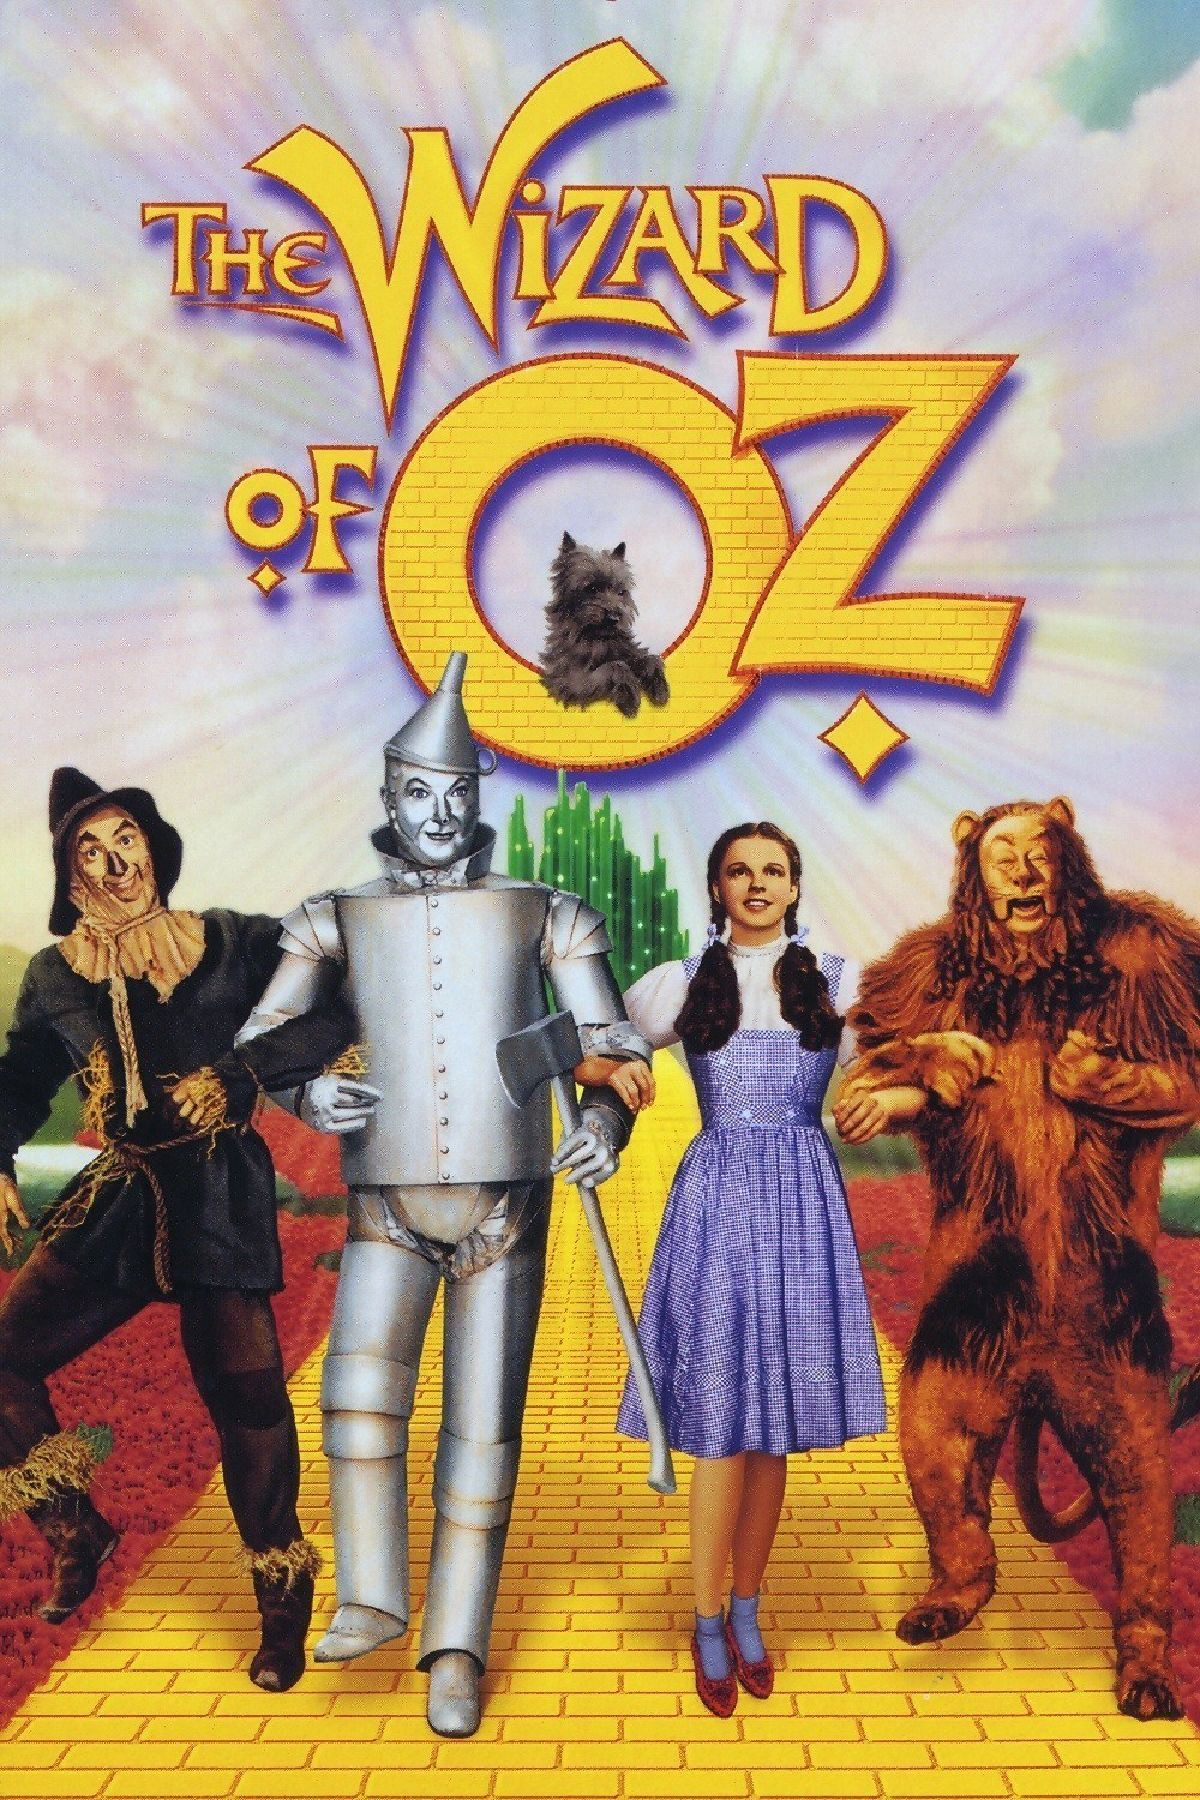 'The Wizard of Oz' movie poster